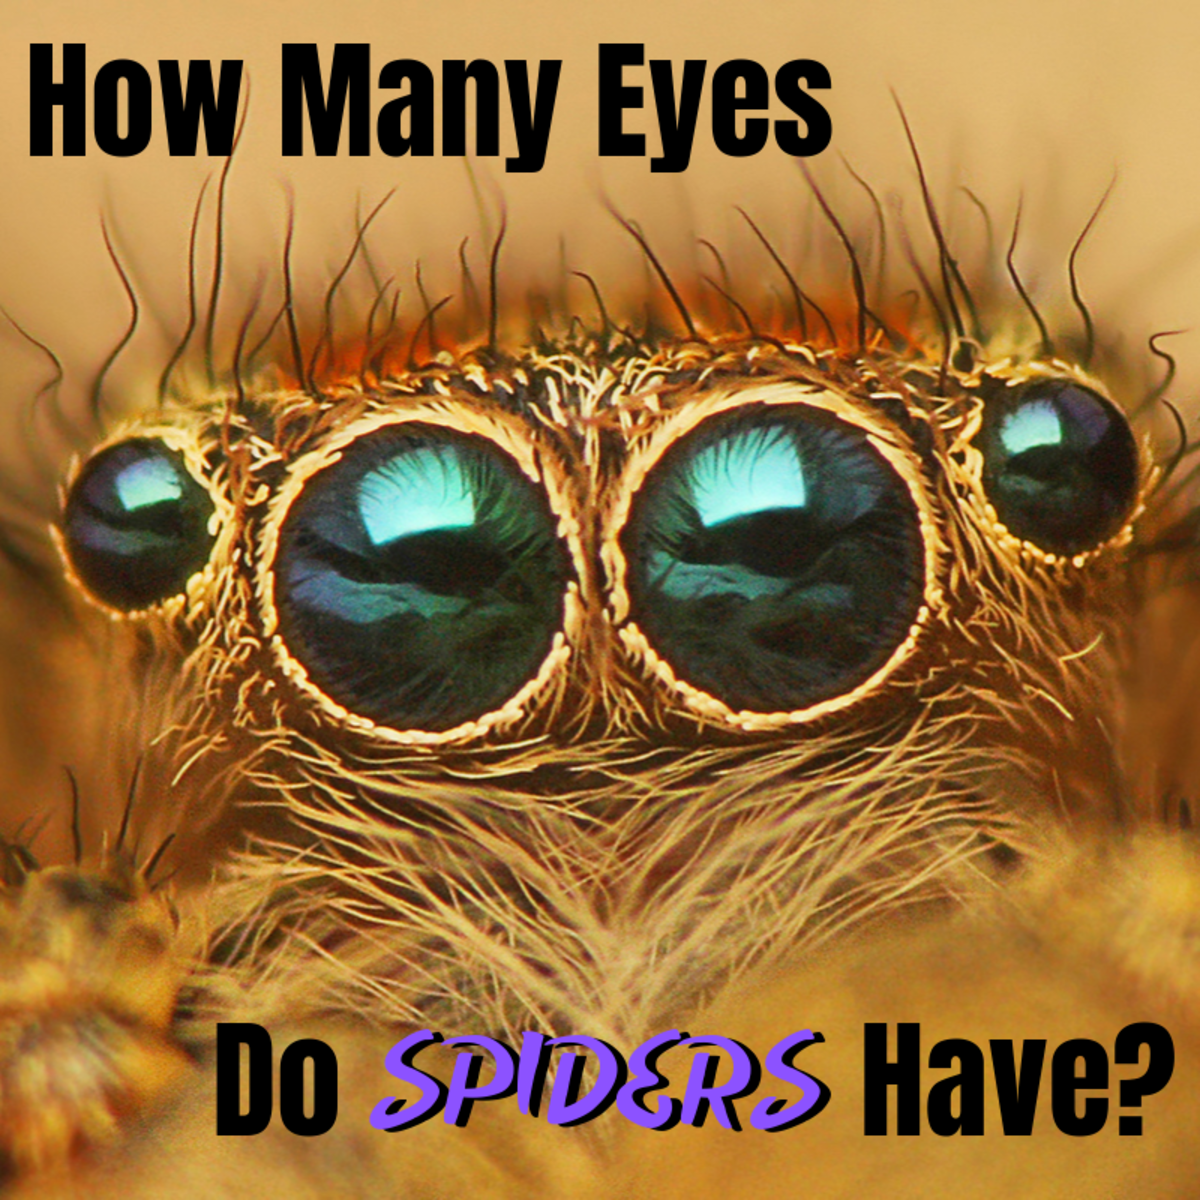 How Many Eyes Does a Spider Have? What Do Spider Eyes Look Like?